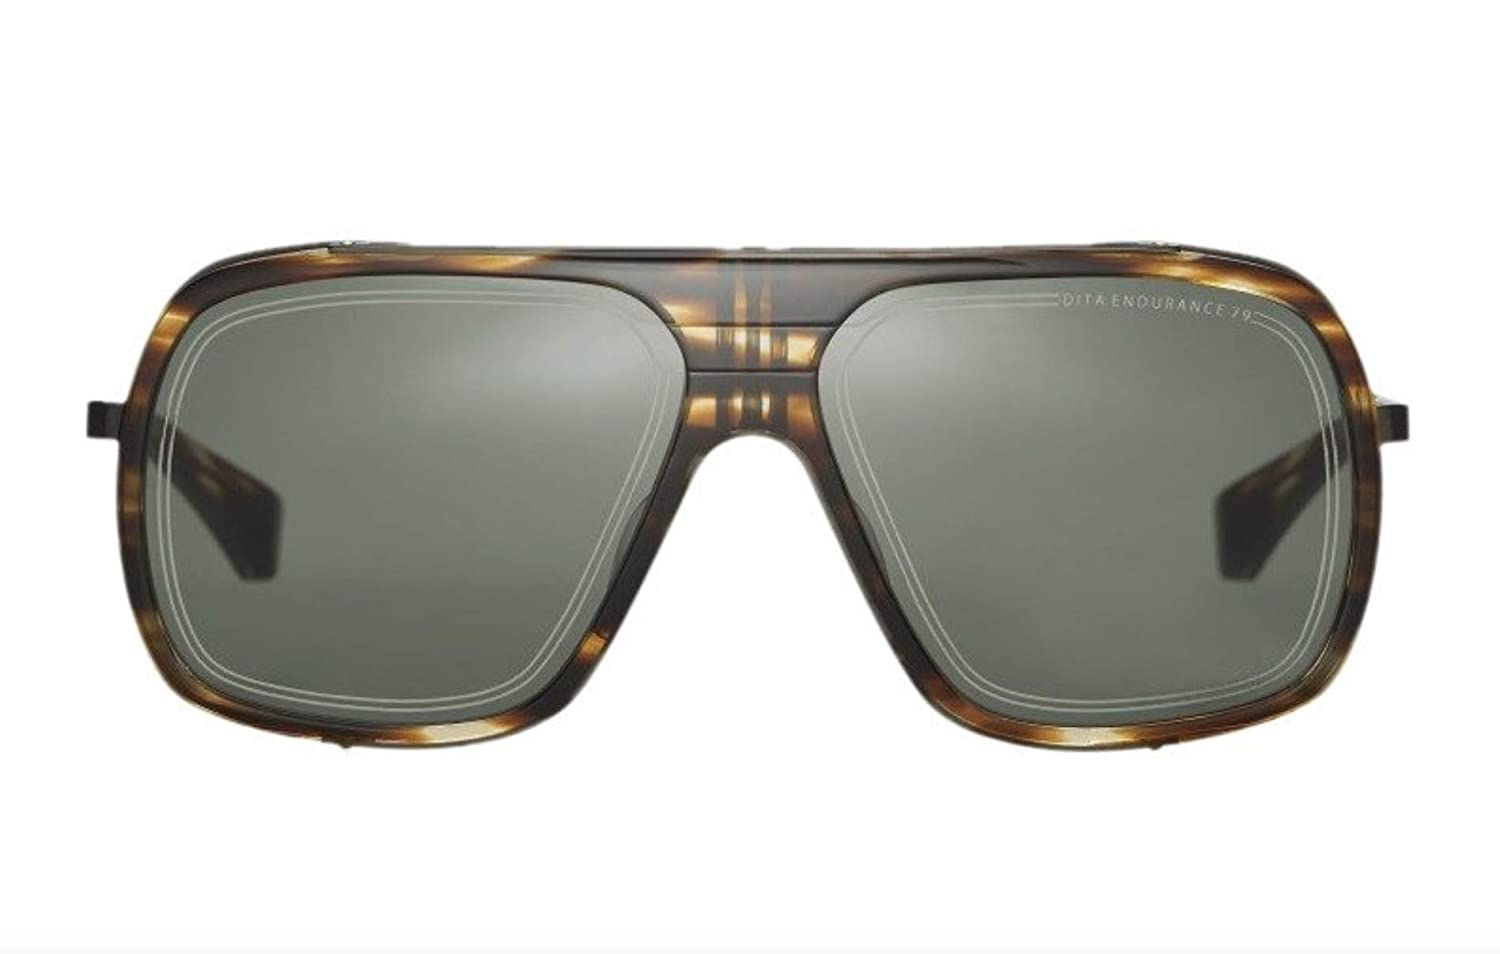 59c92866216 Sunglasses Dita ENDURANCE 79 DTS 104 02 Blackwood-Black Iron w  G15 AR at  Amazon Men s Clothing store